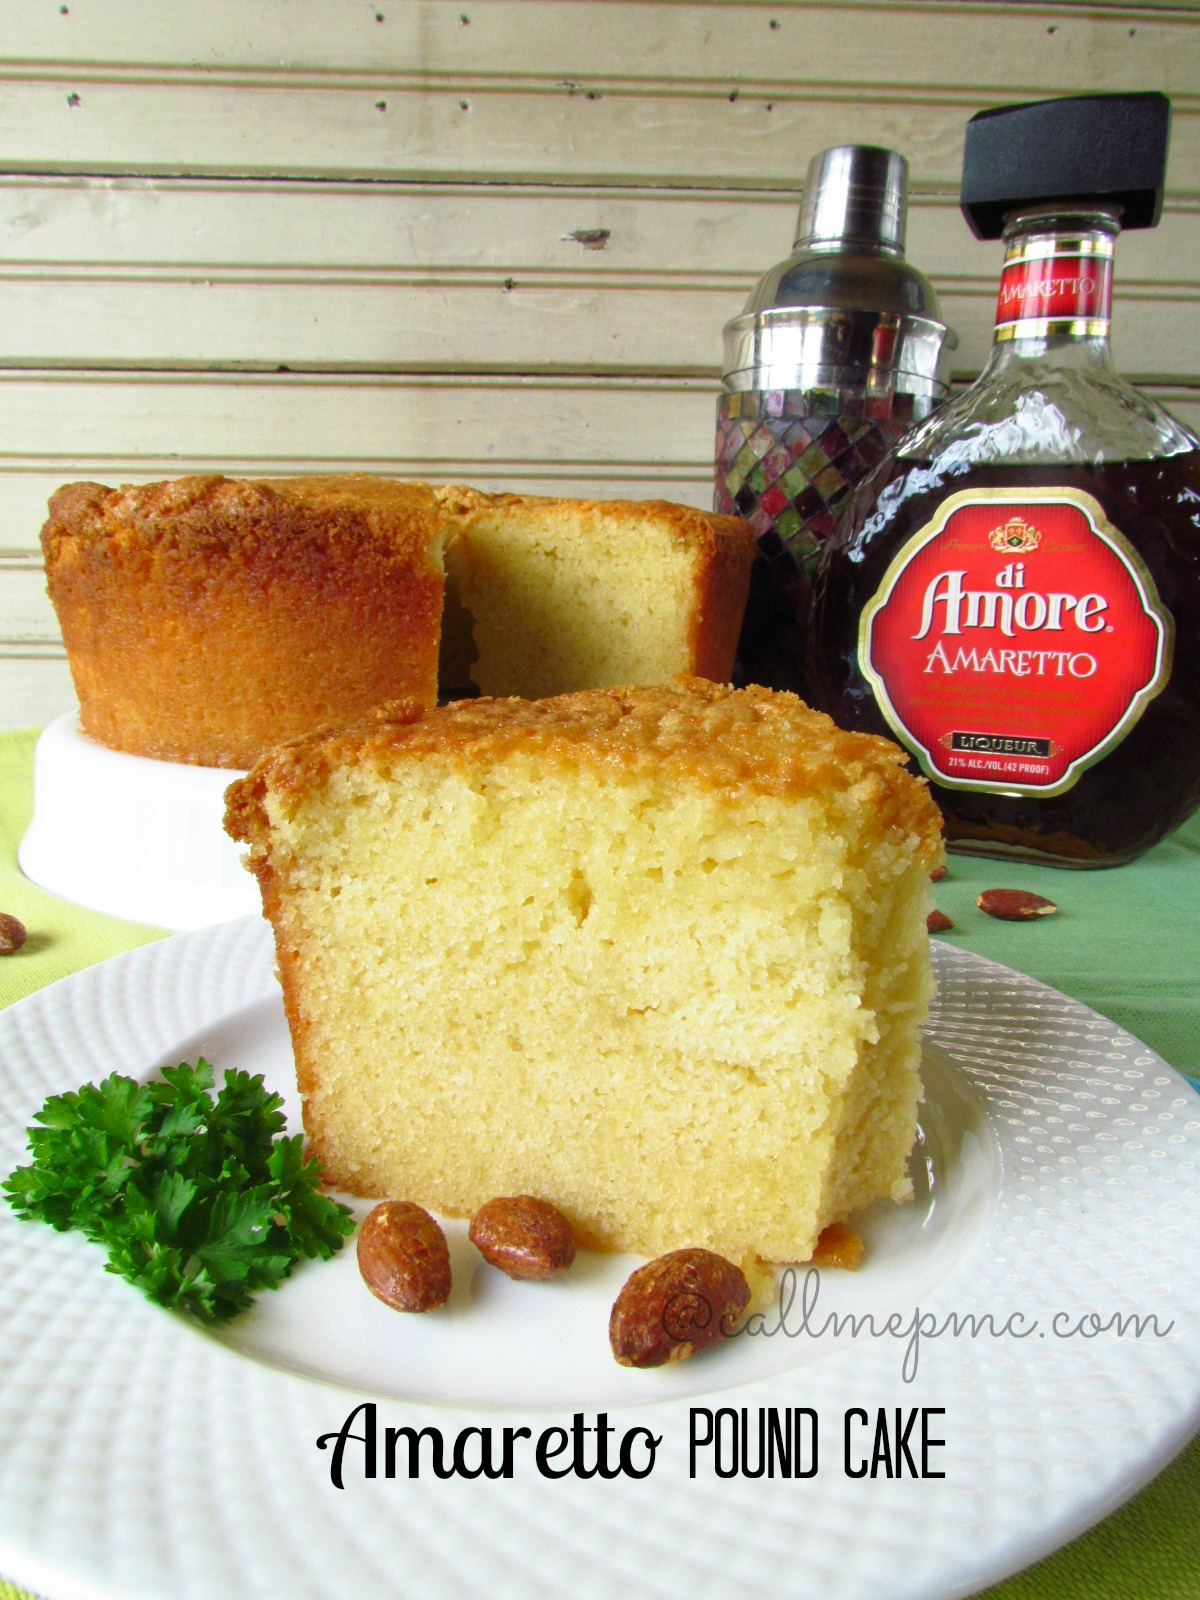 AMARETTO POUND CAKE RECIPE Classic Pound take is kicked up with the addition of Amaretto. Great almond flavor! Doesn't taste like alcohol!